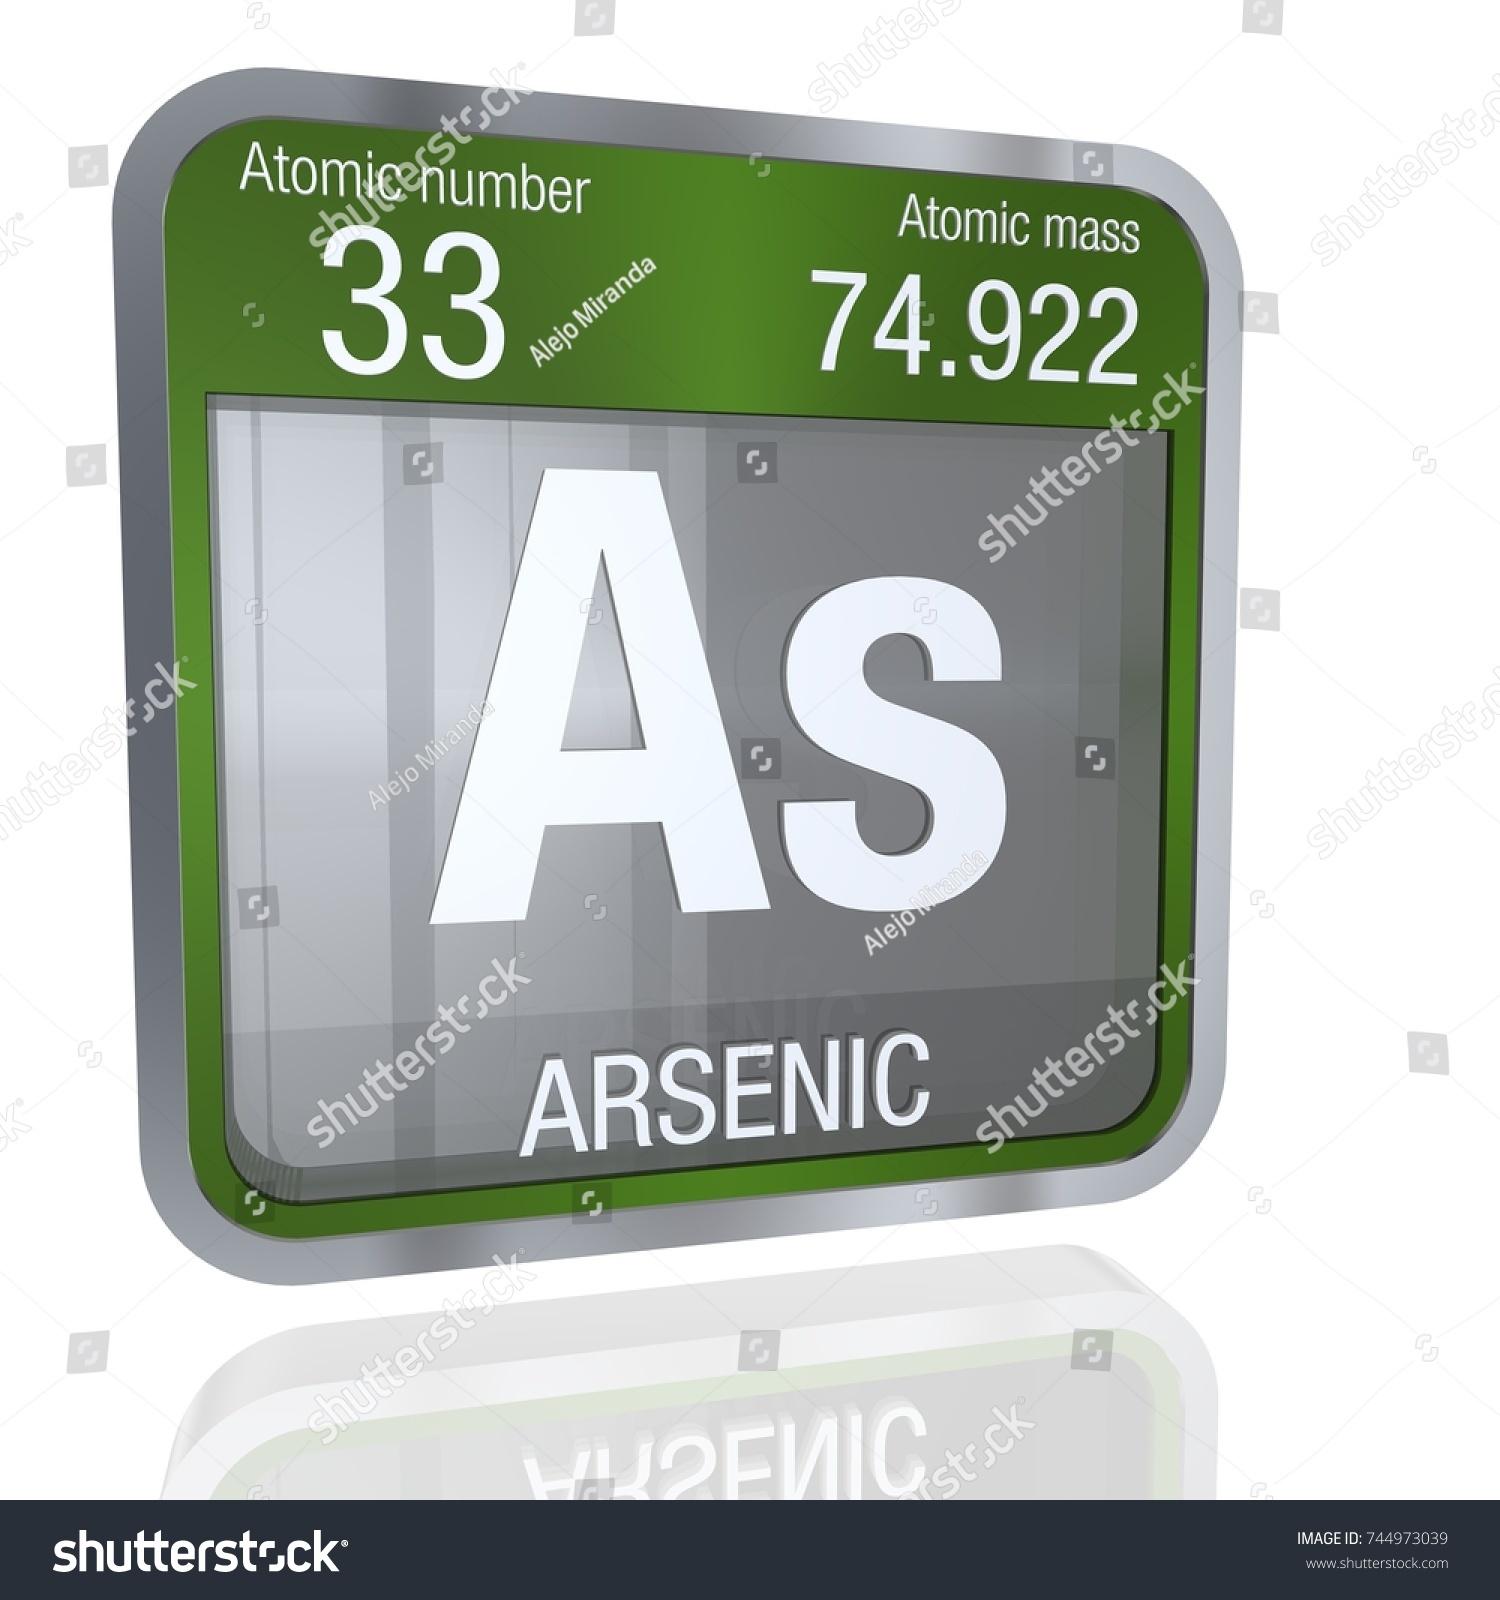 Arsenic symbol square shape metallic border stock illustration arsenic symbol in square shape with metallic border and transparent background with reflection on the floor biocorpaavc Image collections